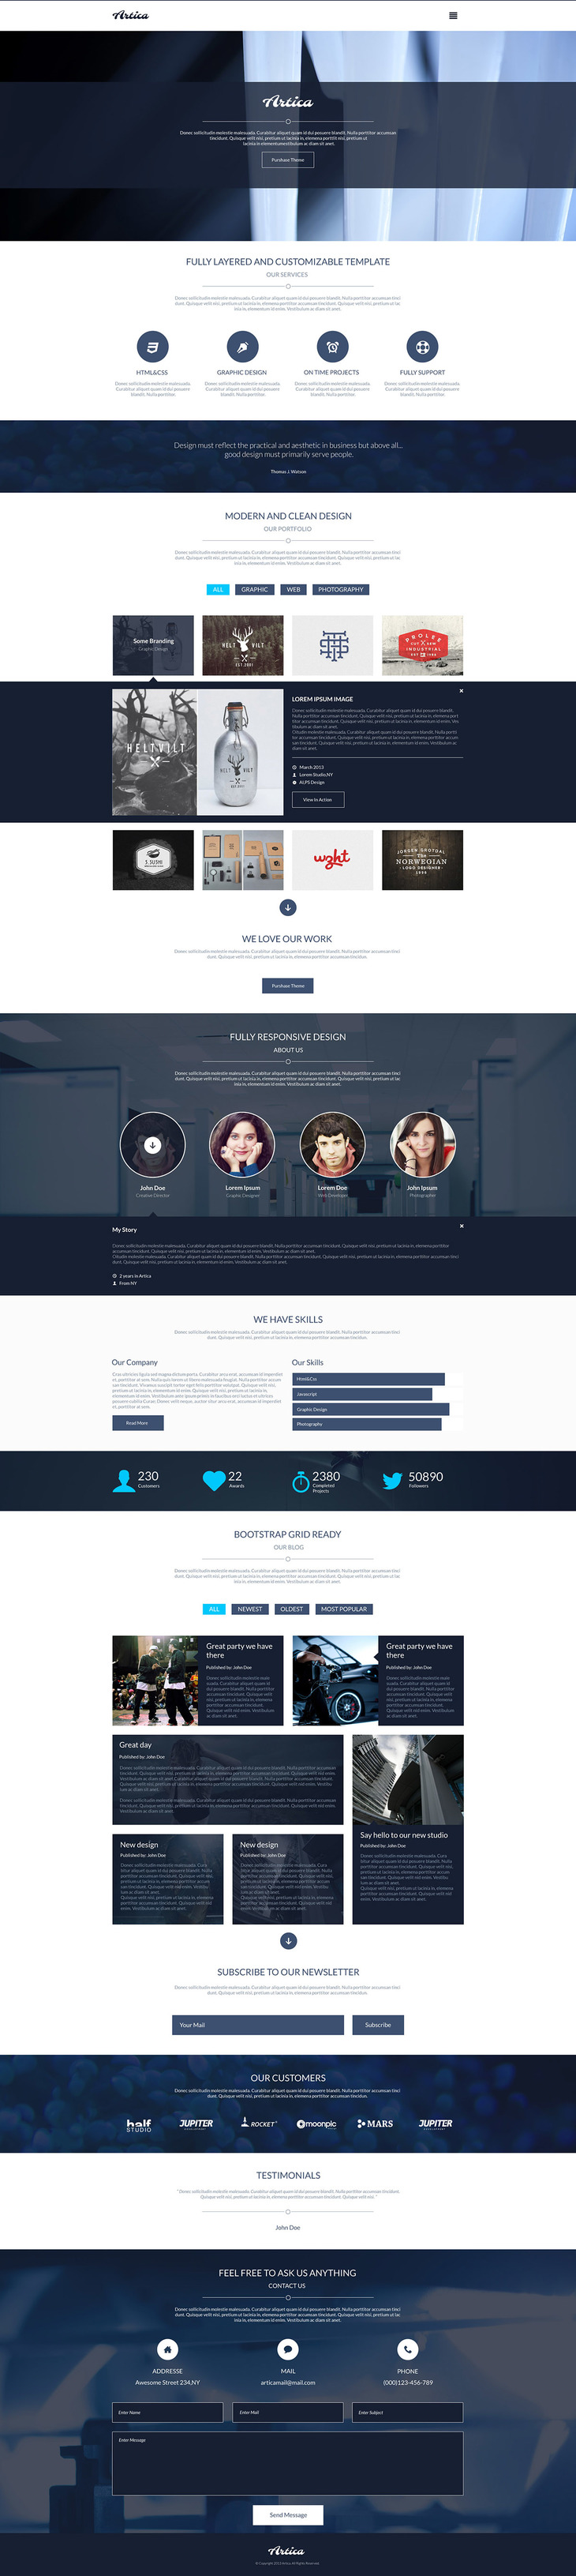 artica psd one page web template preview - Artica Designs